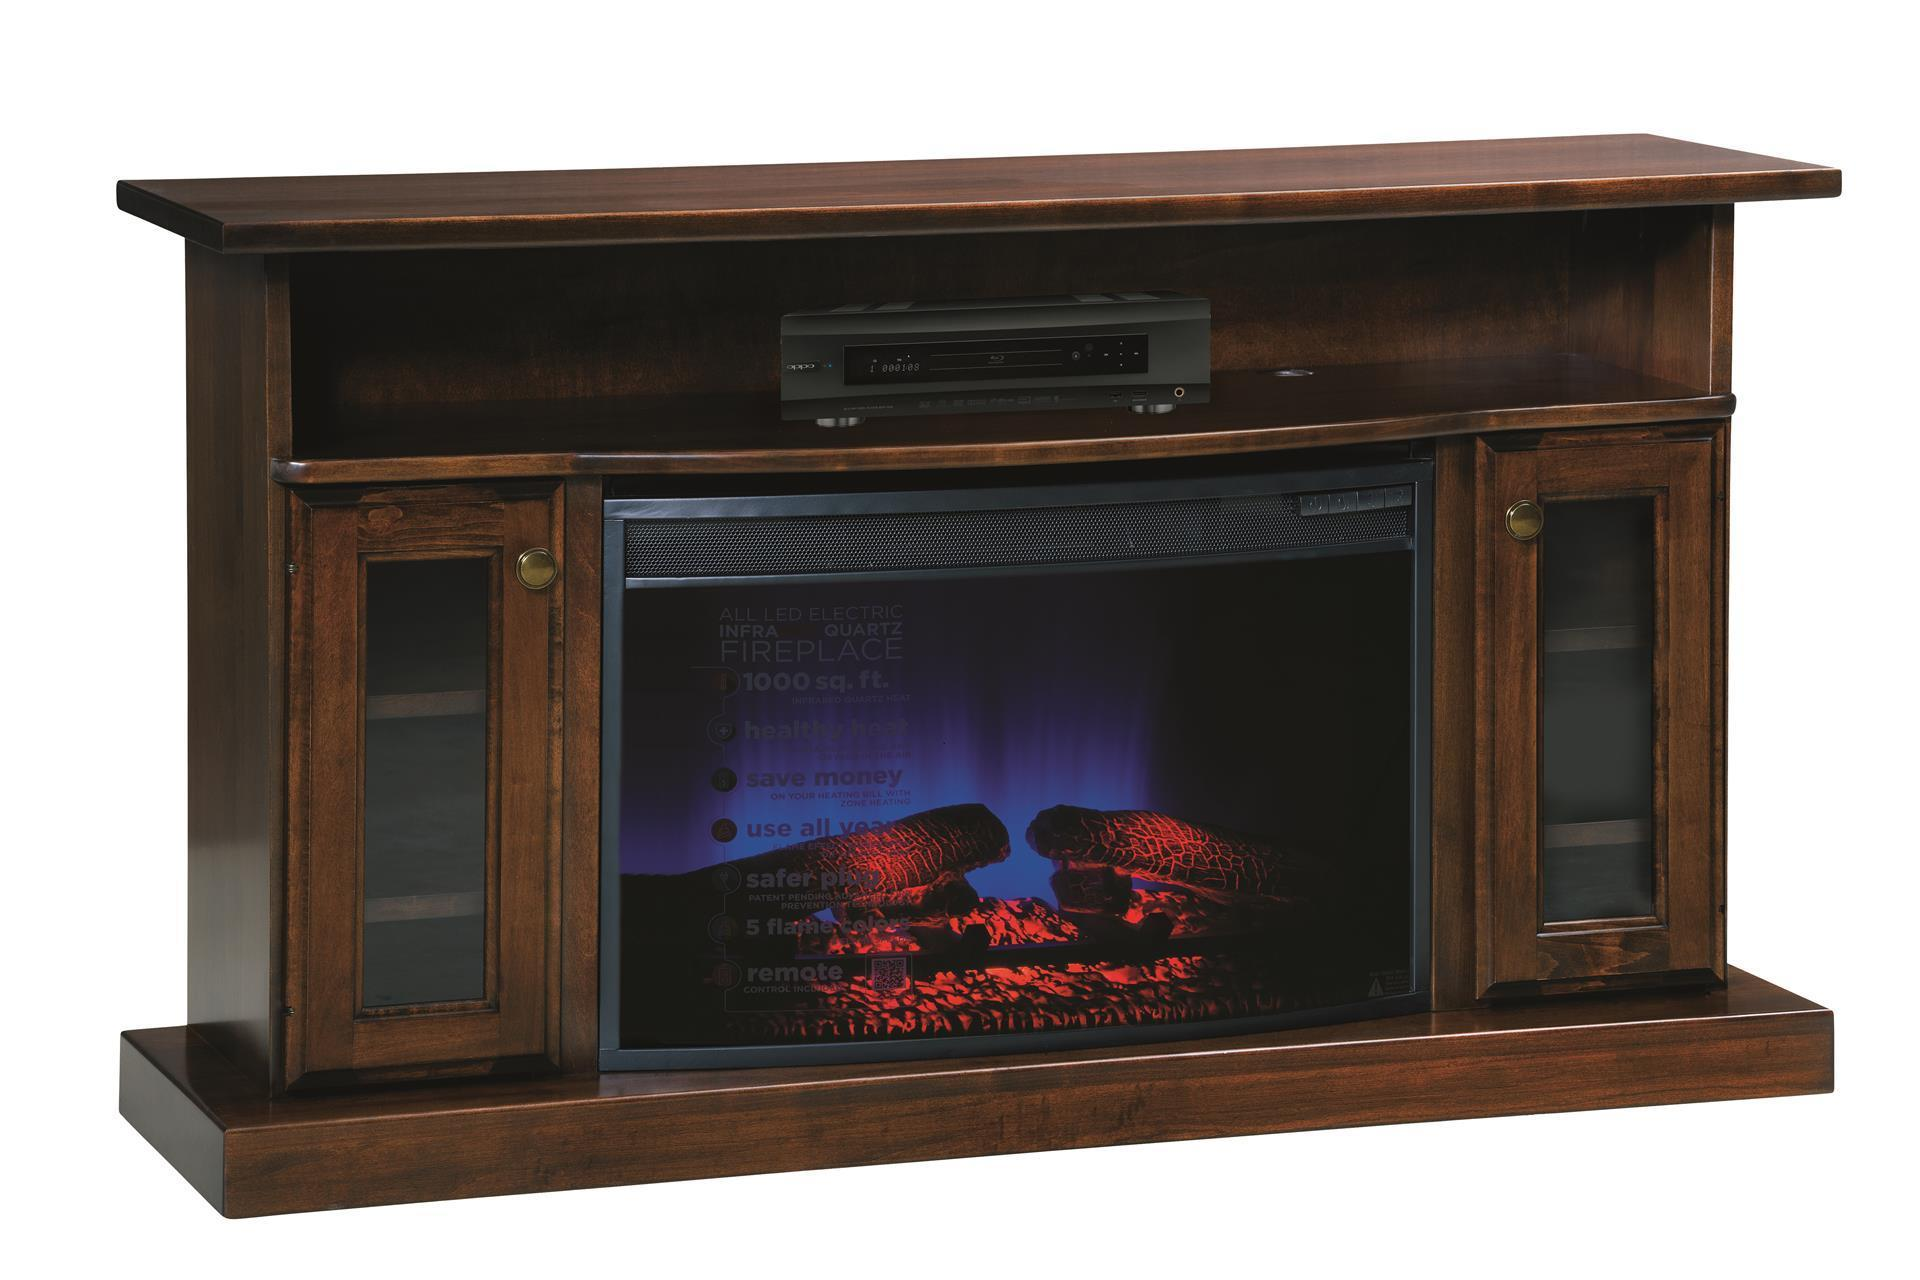 The 49 Electric Fireplace TV Stand provides a warm glow on a cold winter